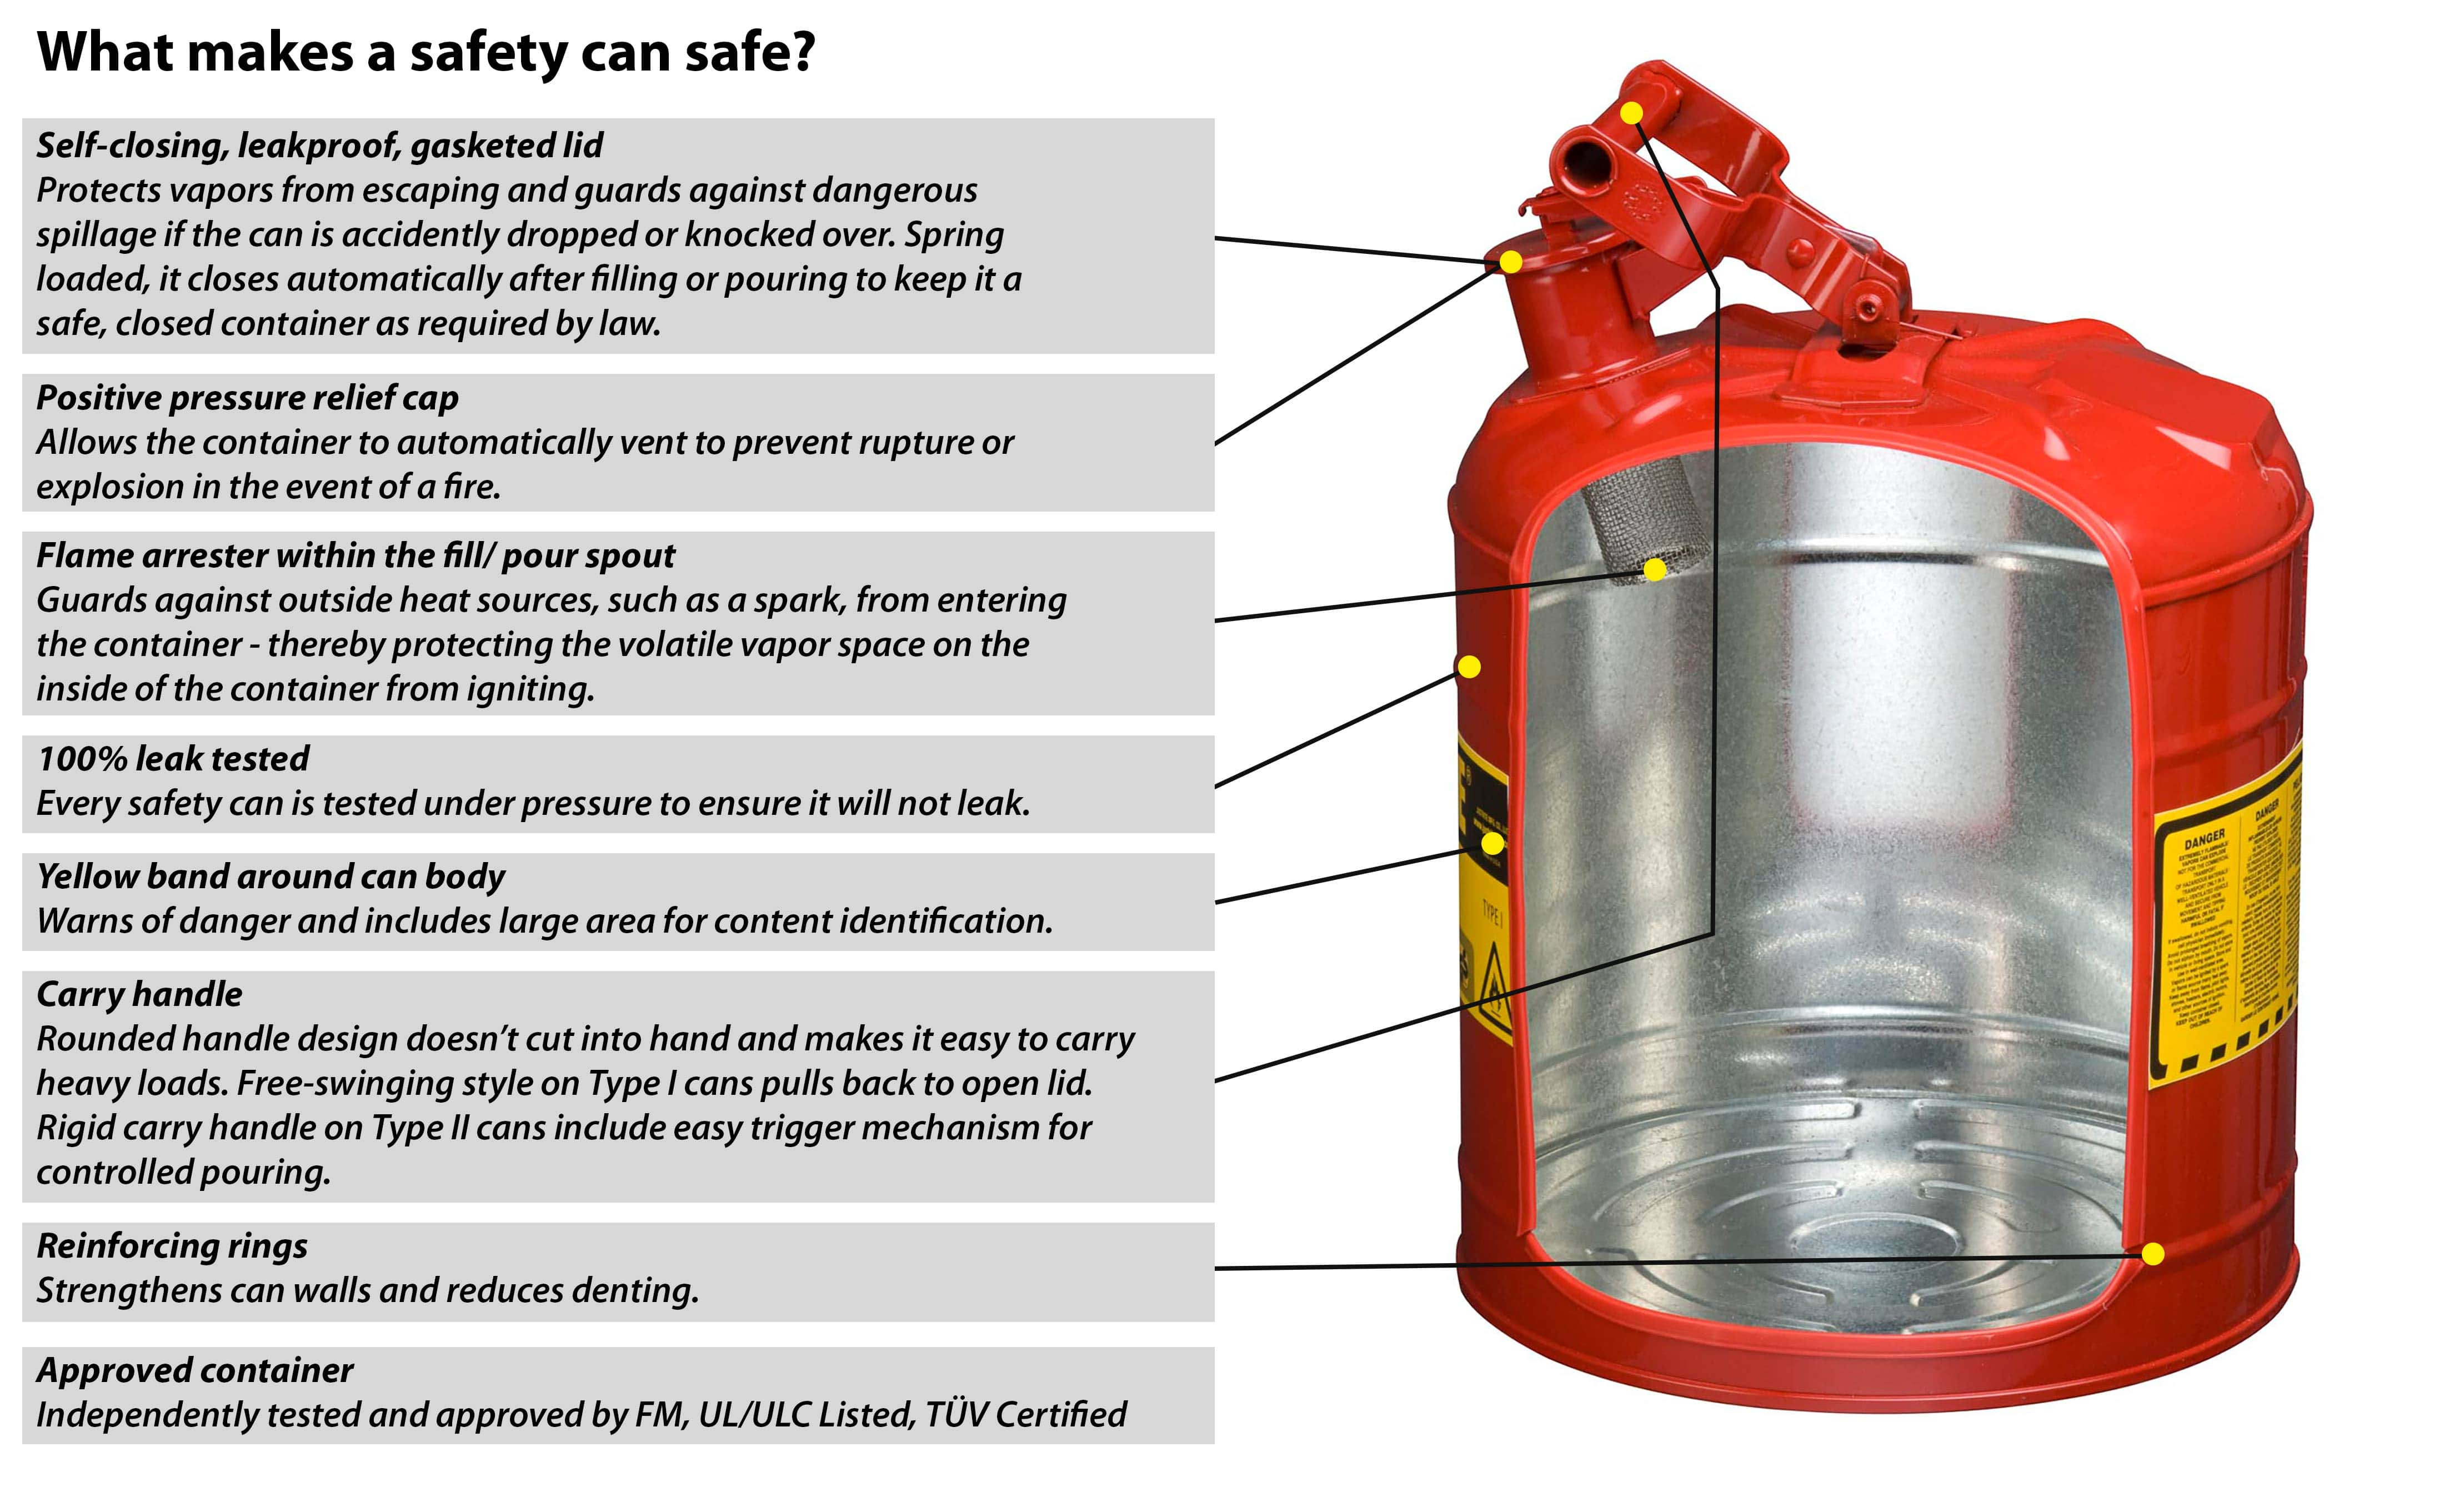 compliant-safety-cans-for-flammable-chemicals